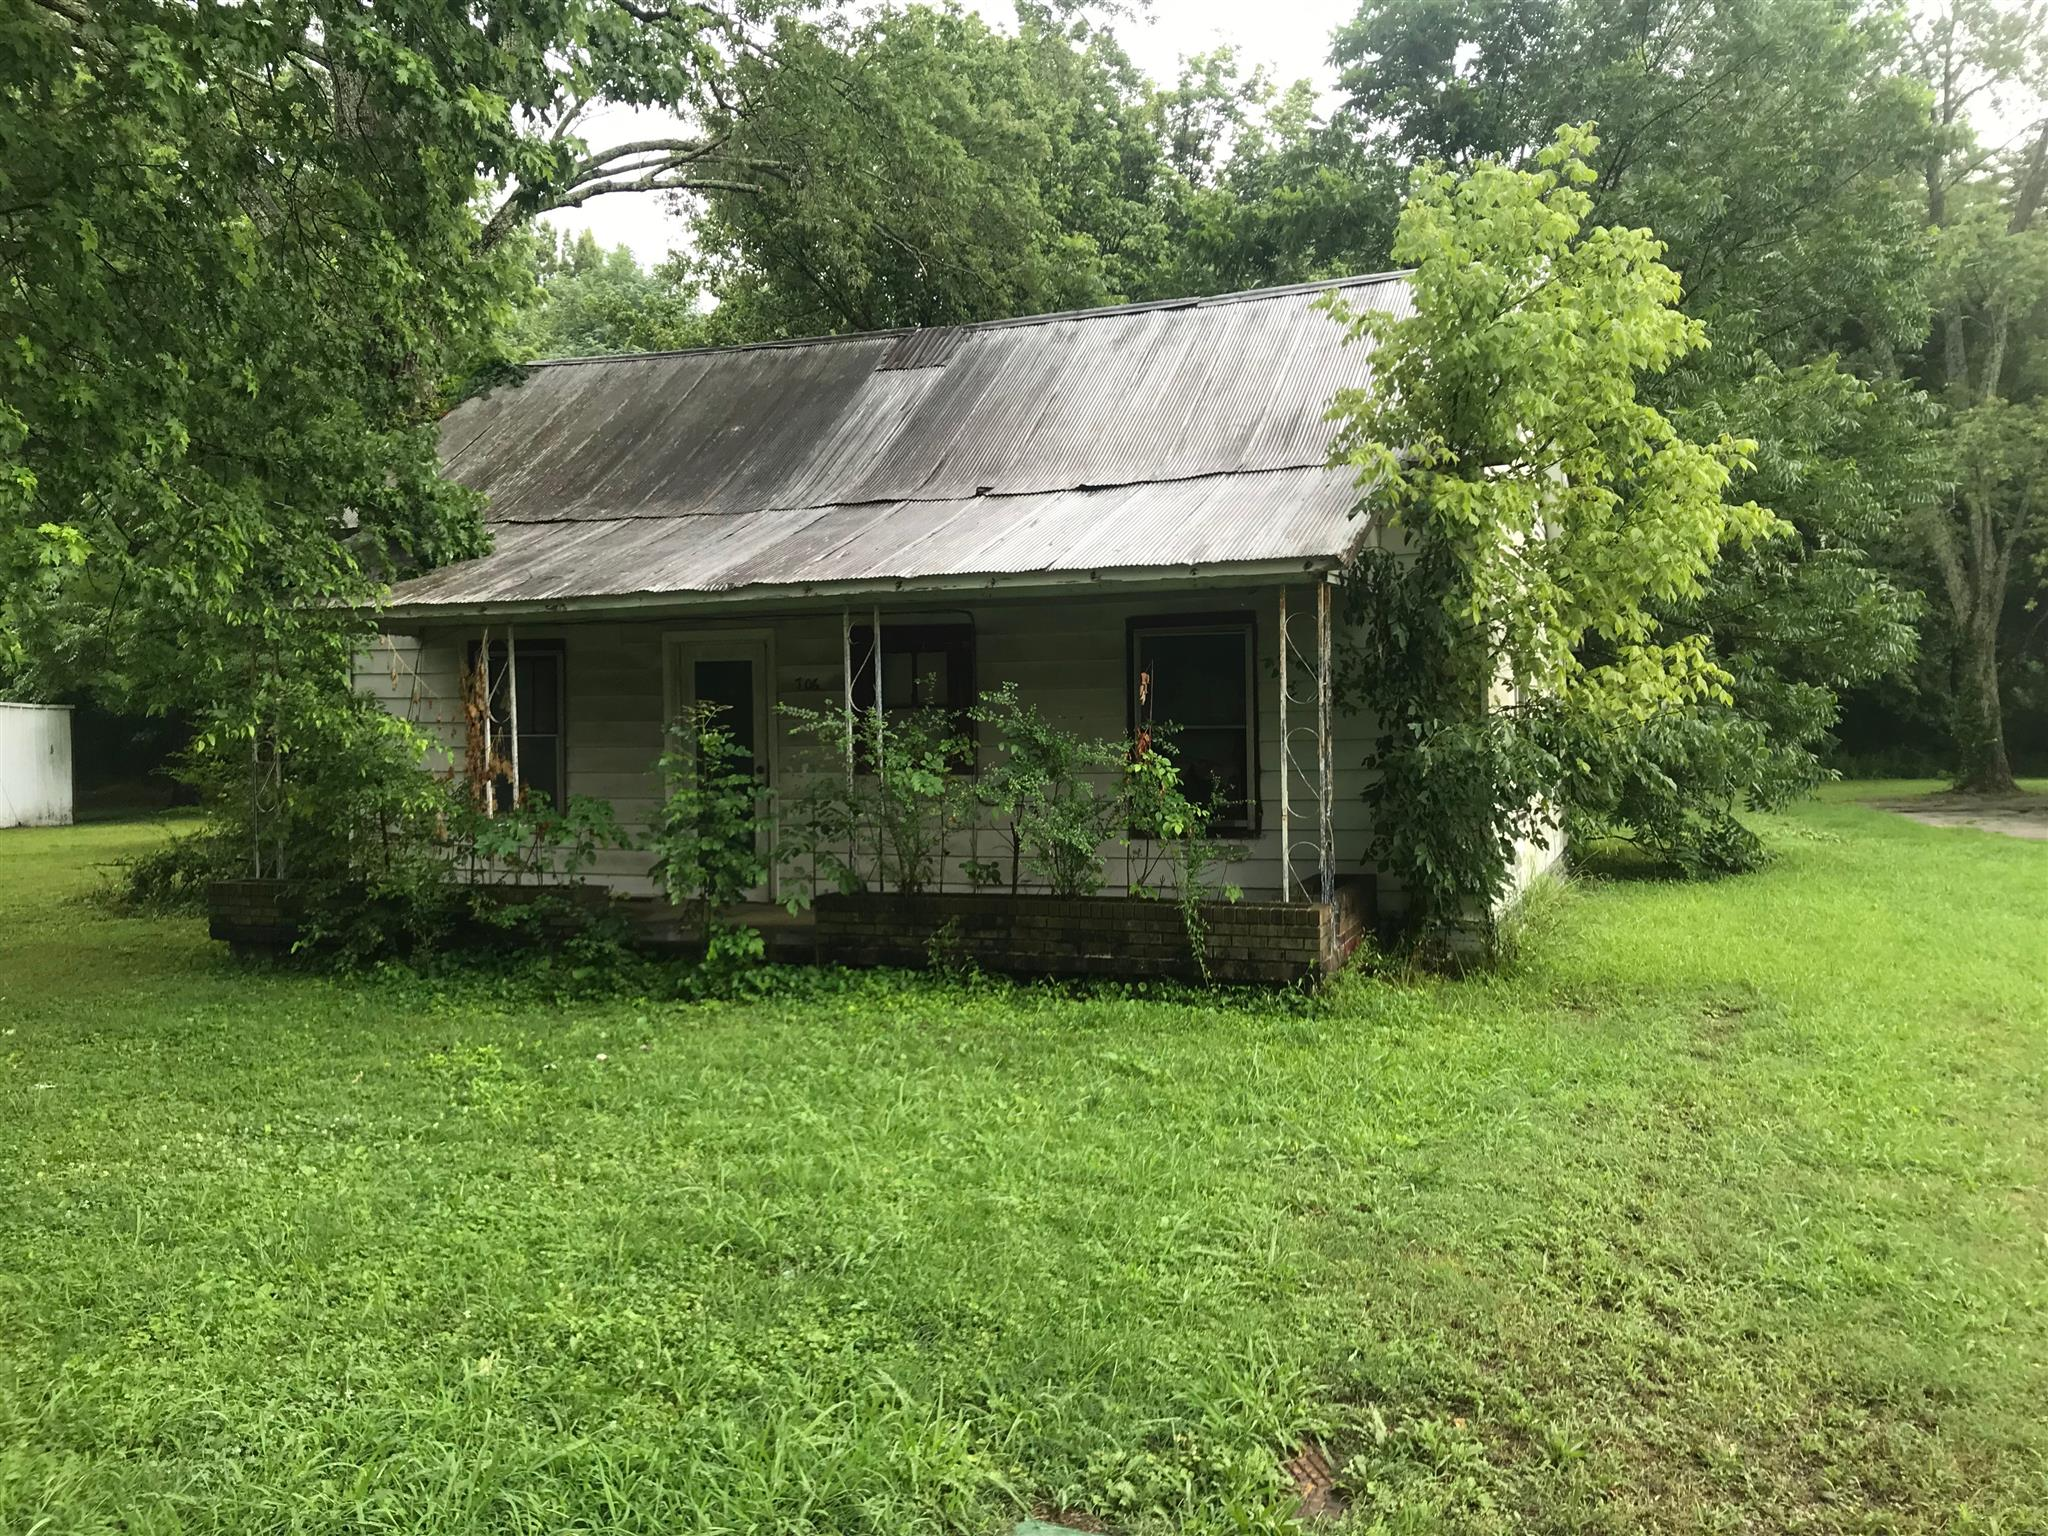 706 E Grizzard St, Tullahoma, TN 37388 - Tullahoma, TN real estate listing